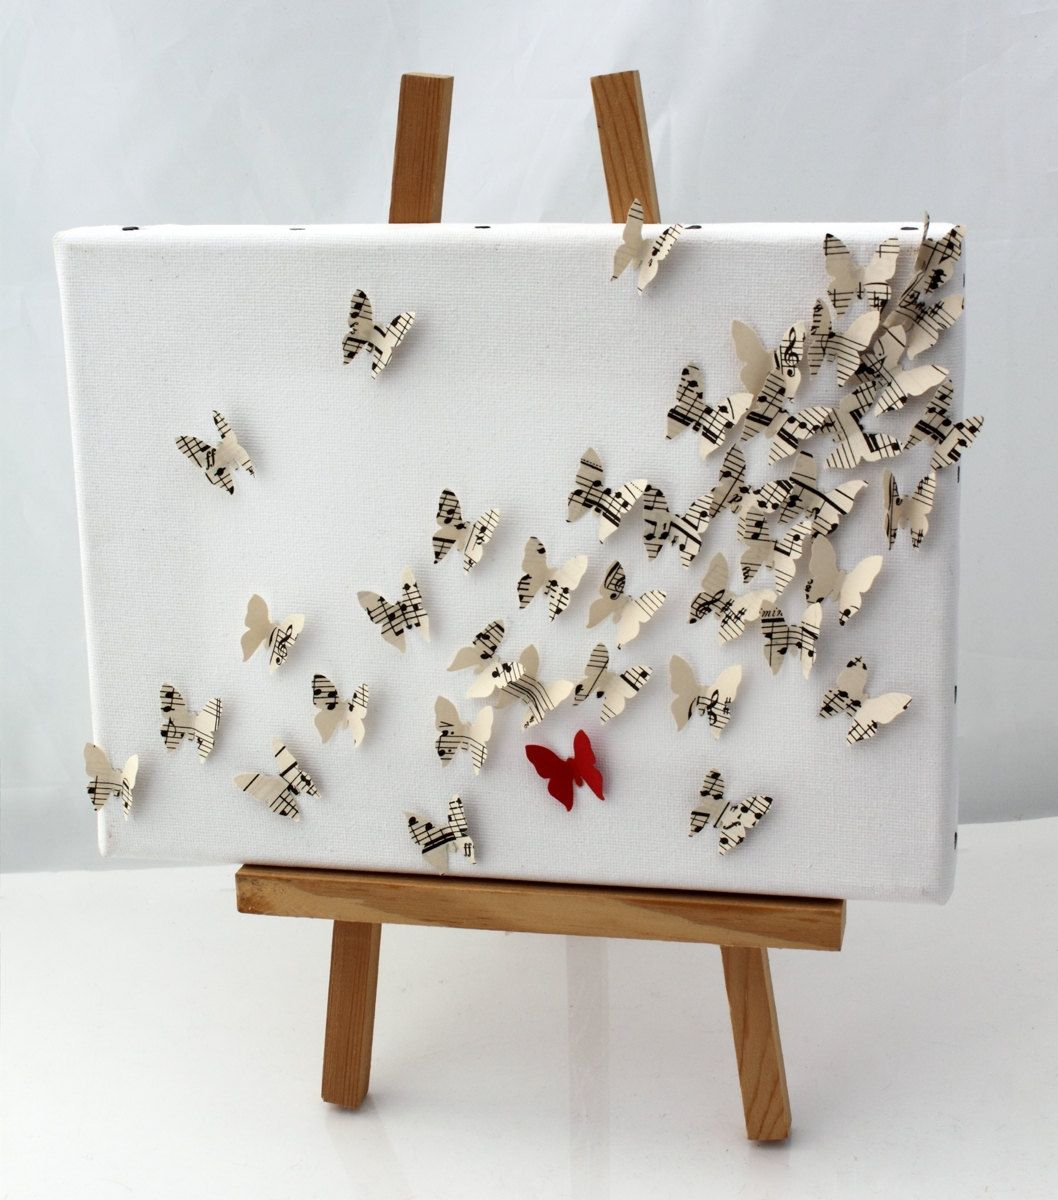 3d butterfly wall art collage on canvas craft it for Collage wall art ideas